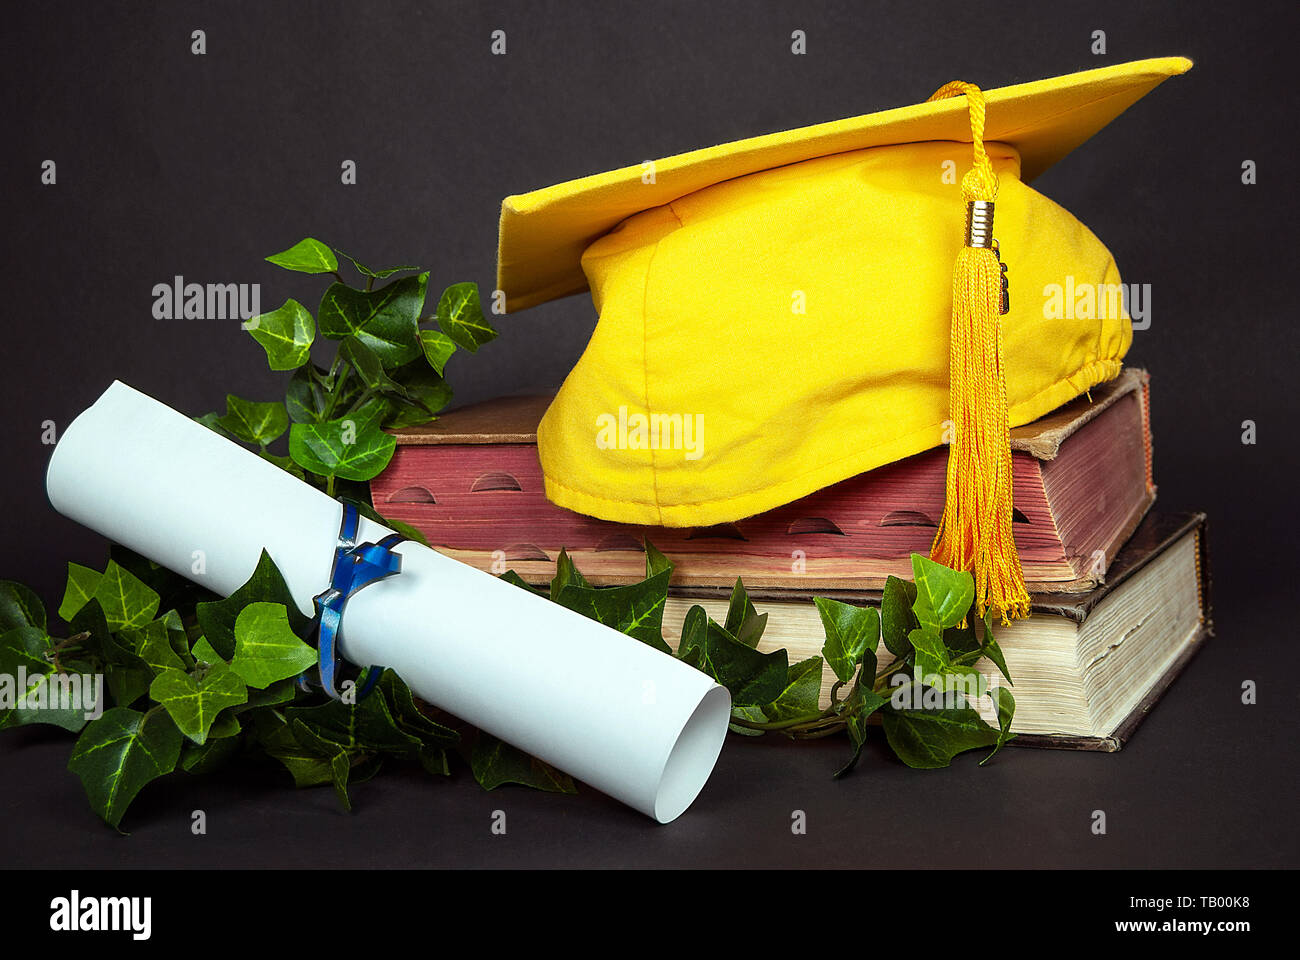 bright gold graduation cap on old books with white blank diploma tied with blue ribbon - Stock Image